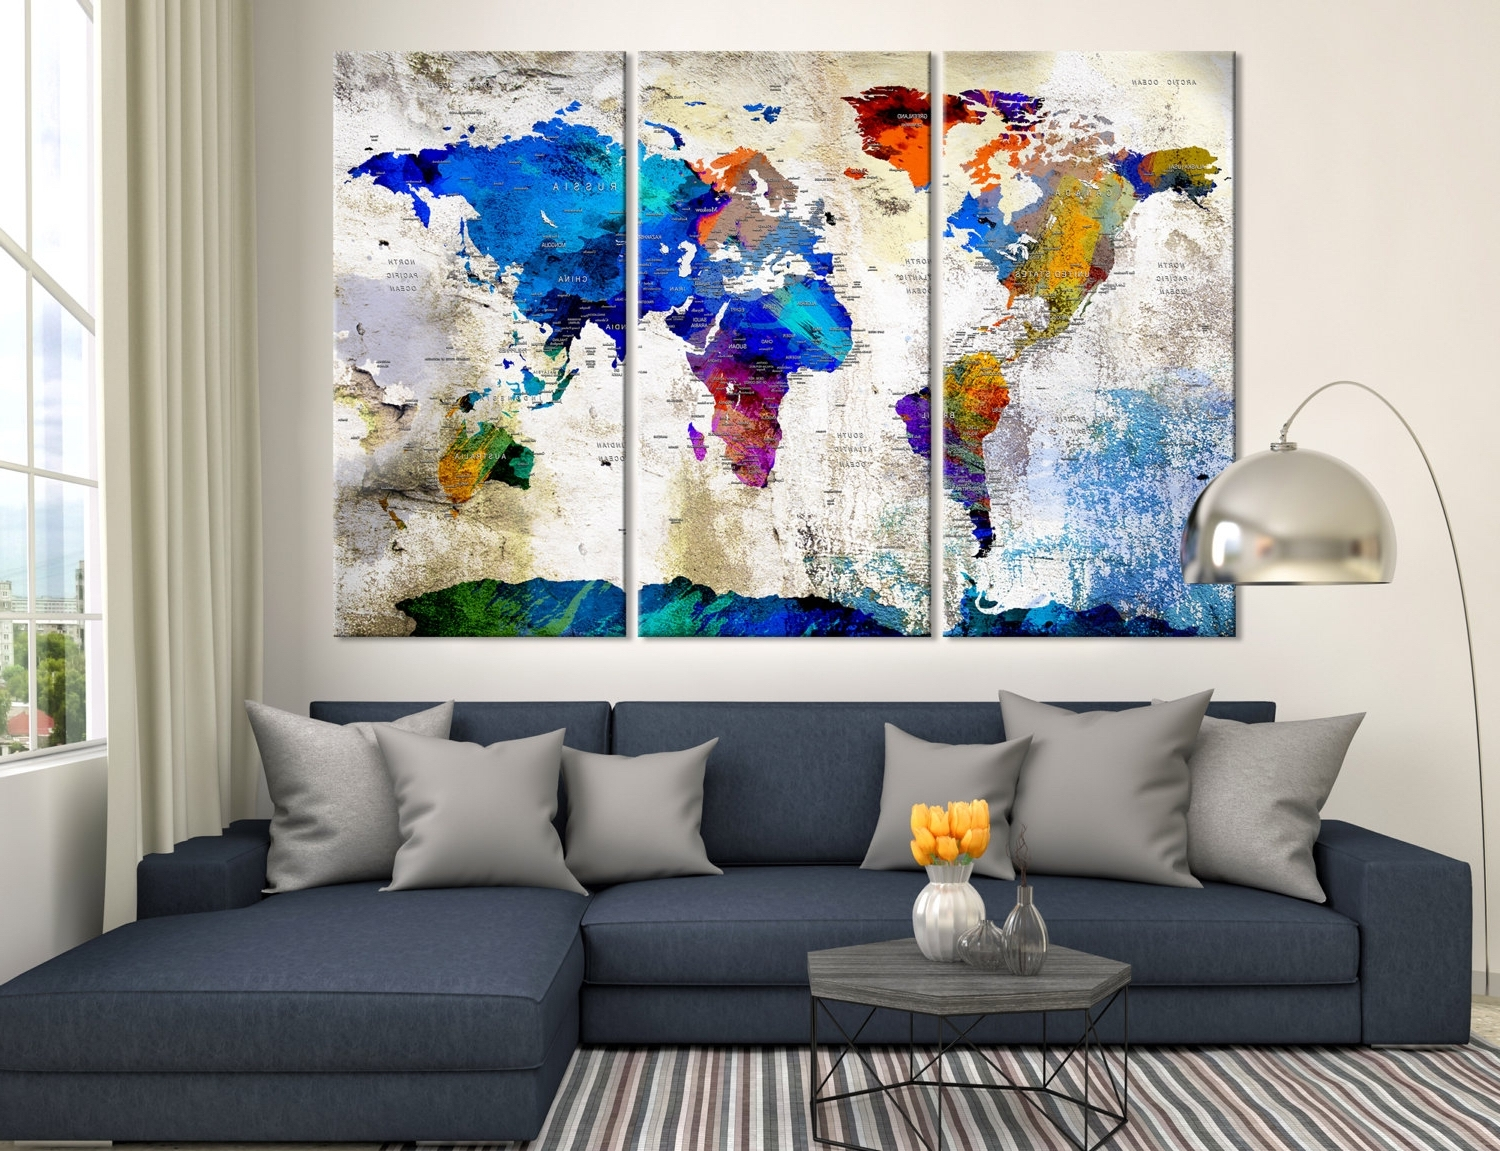 Large Wall Art Push Pin World Map, Push Pin, World Map, Wall Art With Regard To Most Recently Released Large Triptych Wall Art (View 15 of 15)